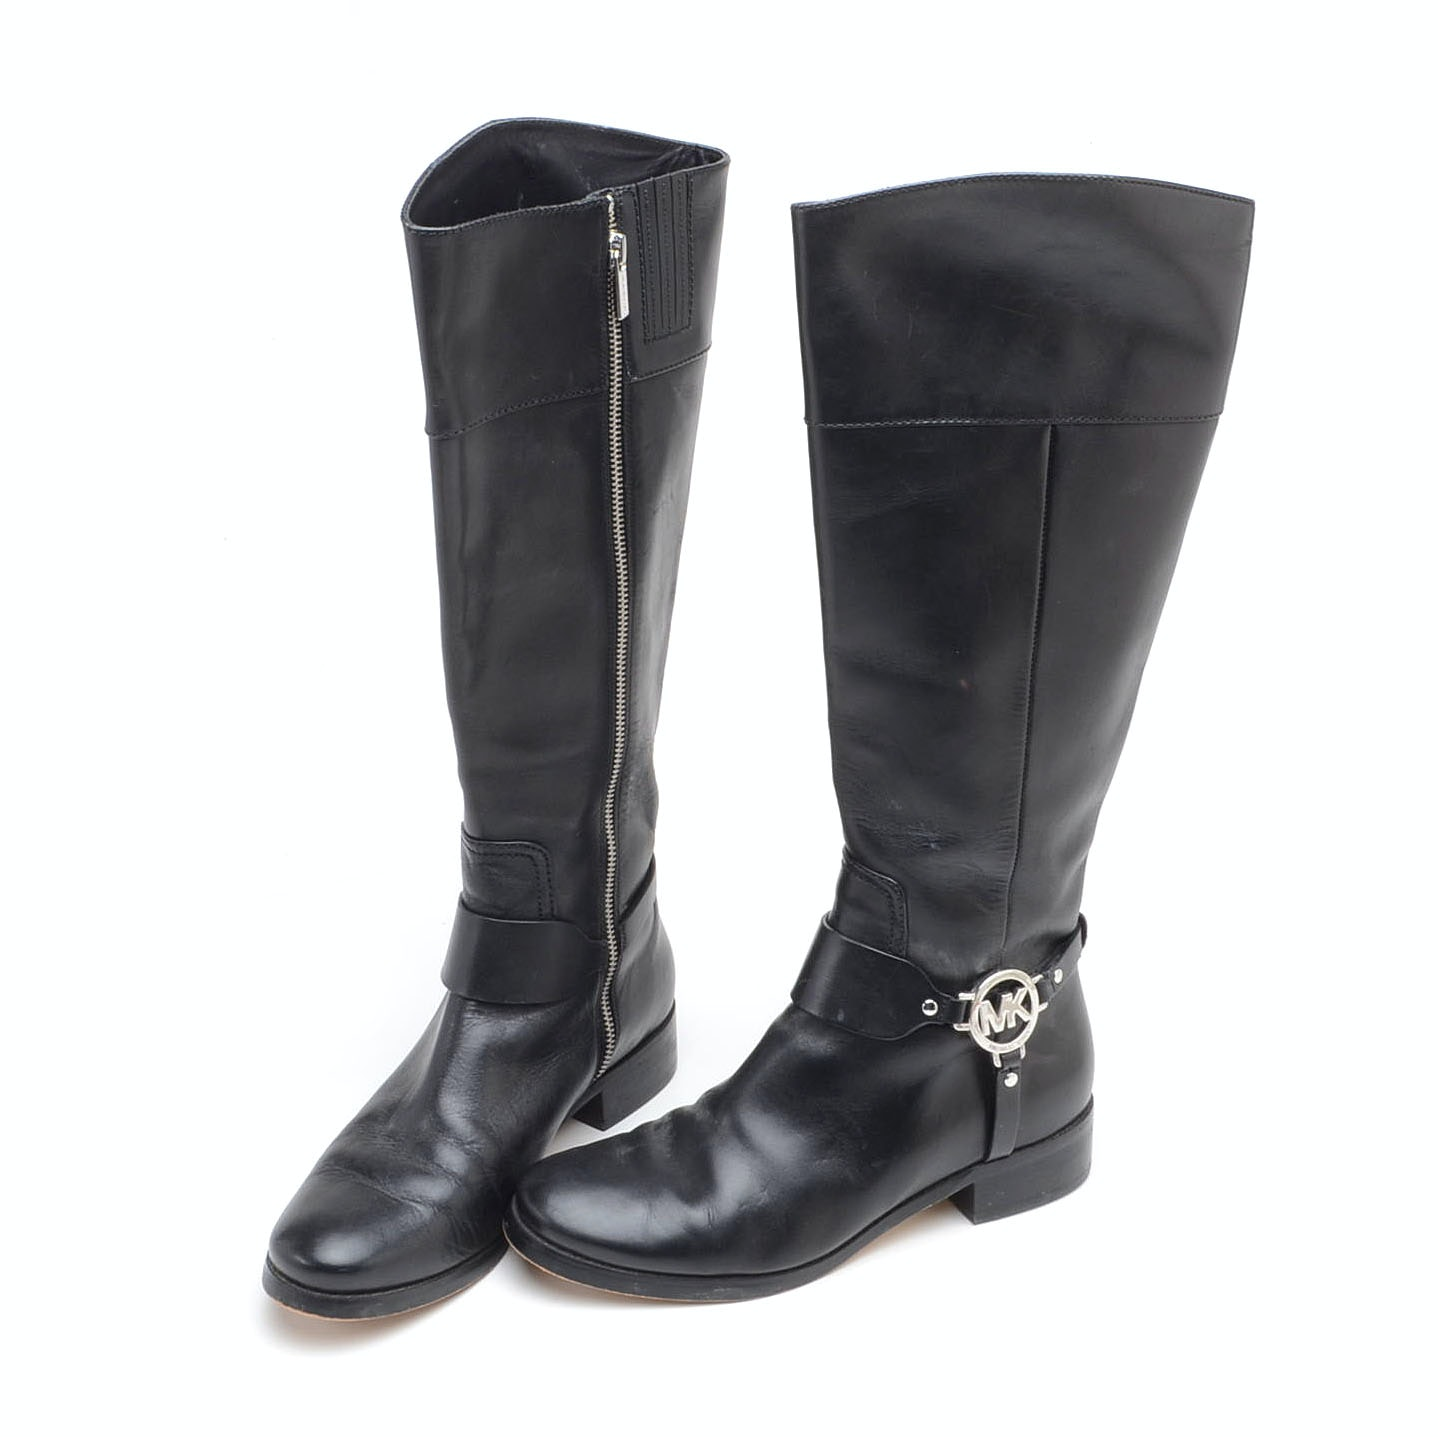 Pair of Michael Kors Black Leather Fulton Harness Riding Boots